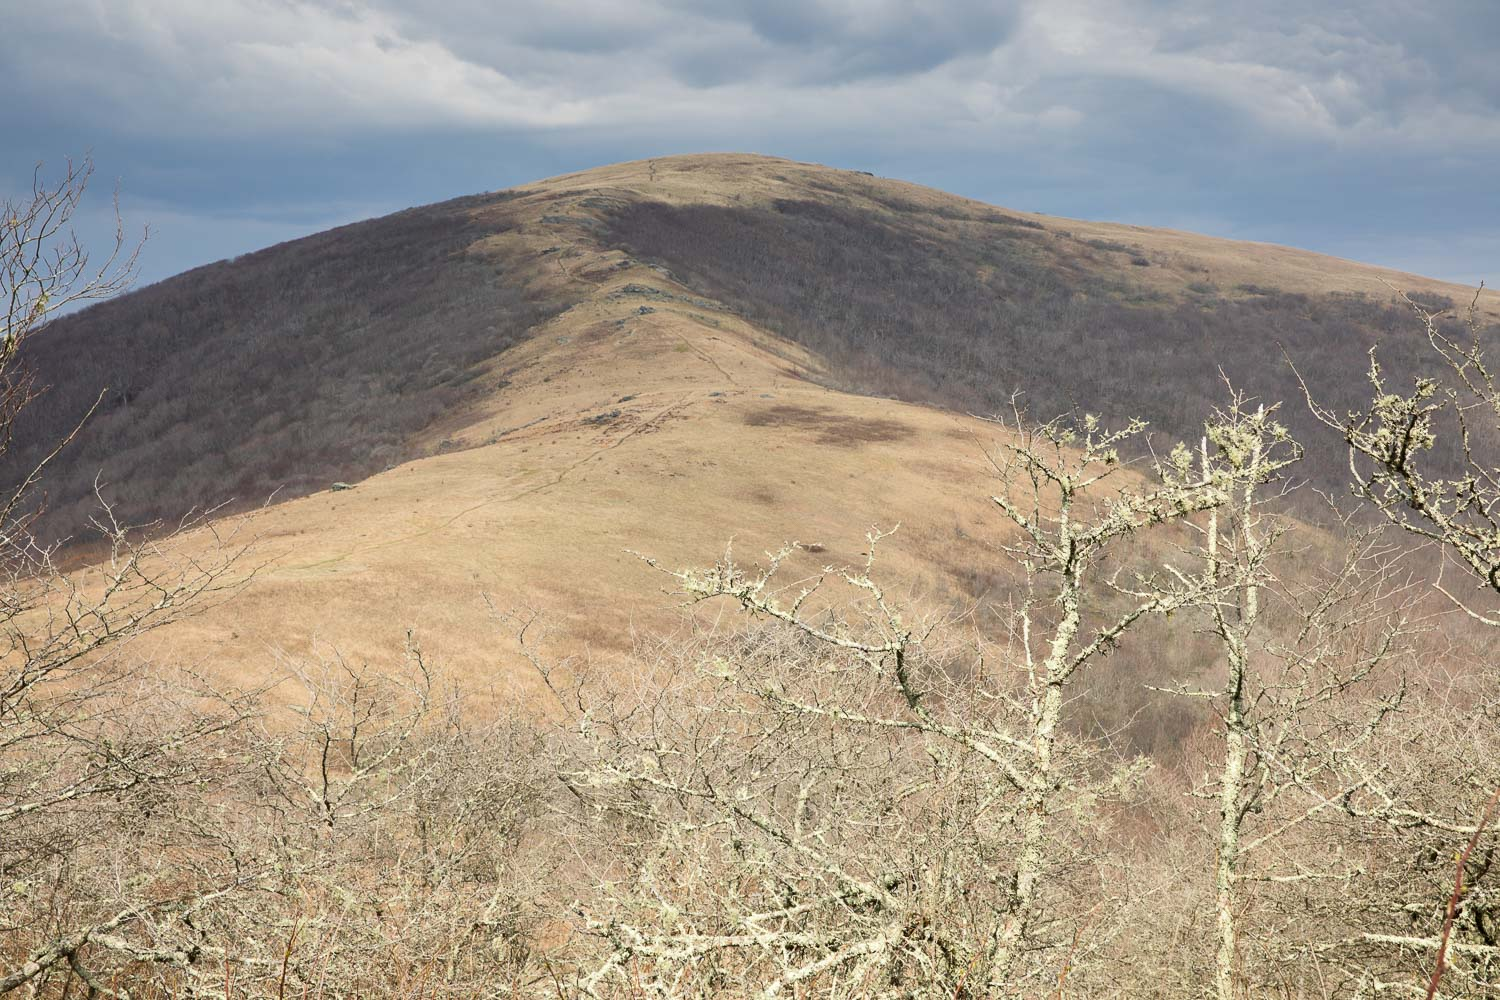 Hump Mountain, Appalachian Trail - yup, we had to hike up that thing